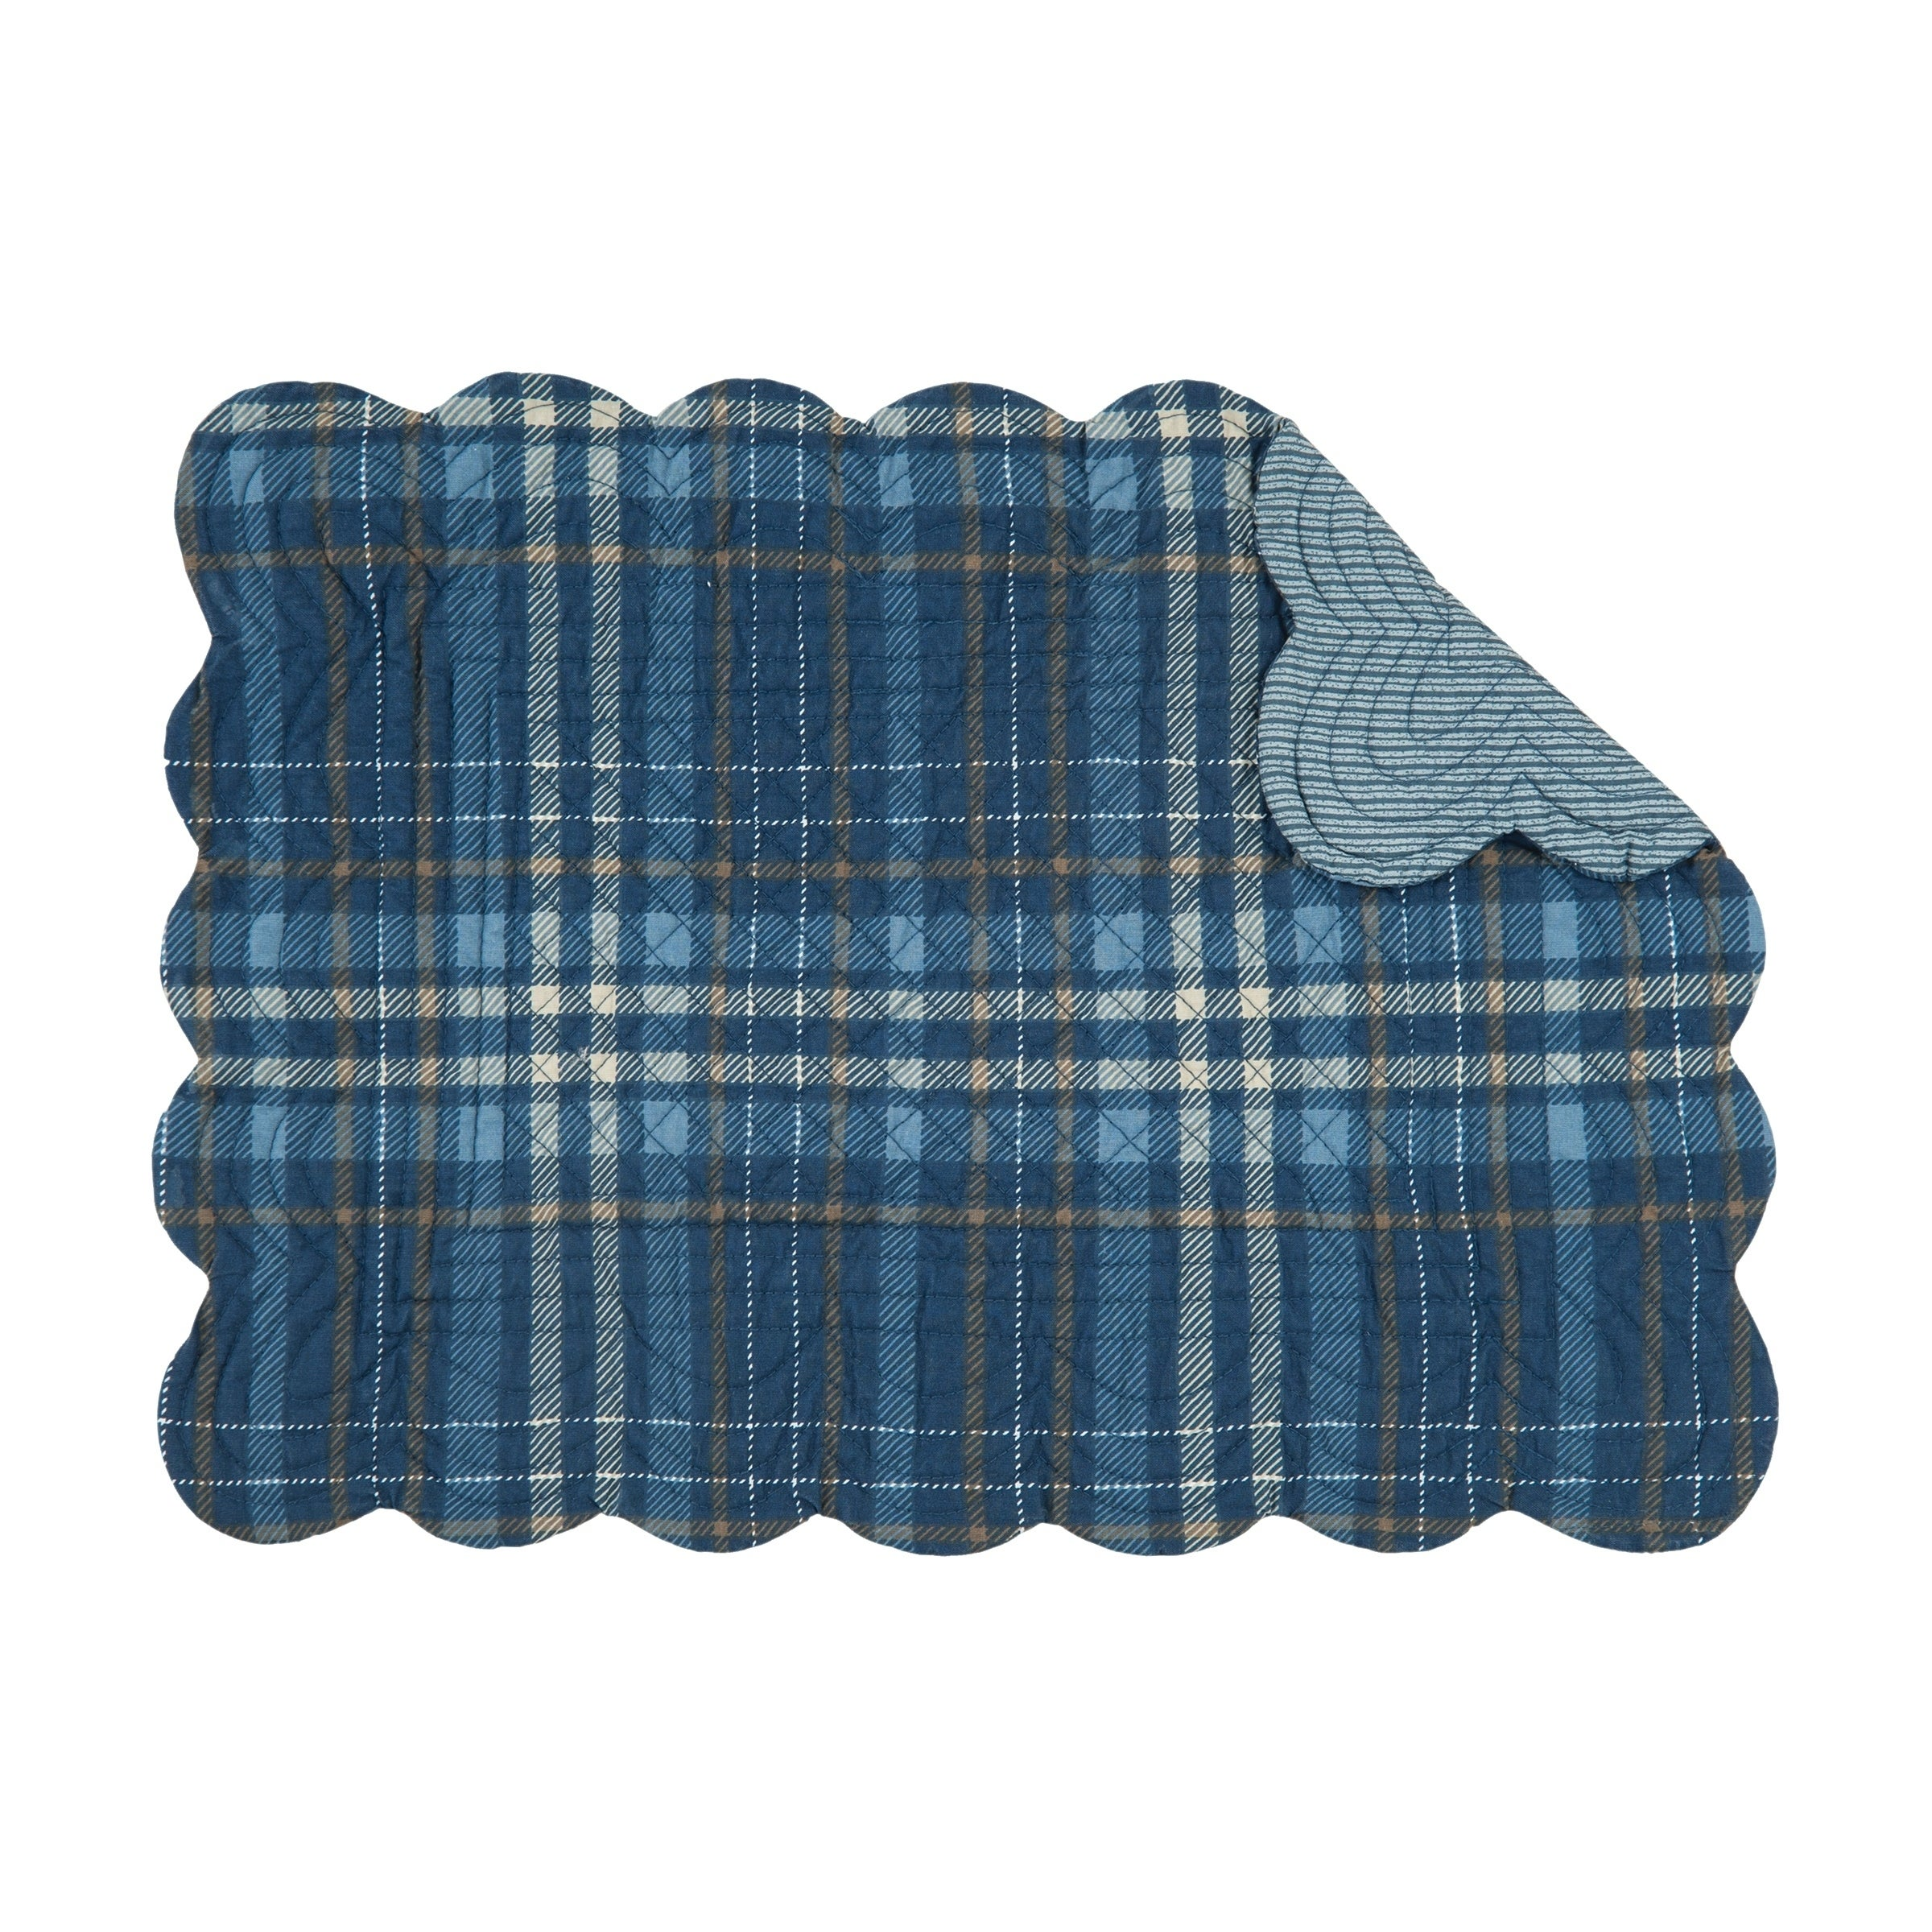 Cotton Quilted Placemat Set